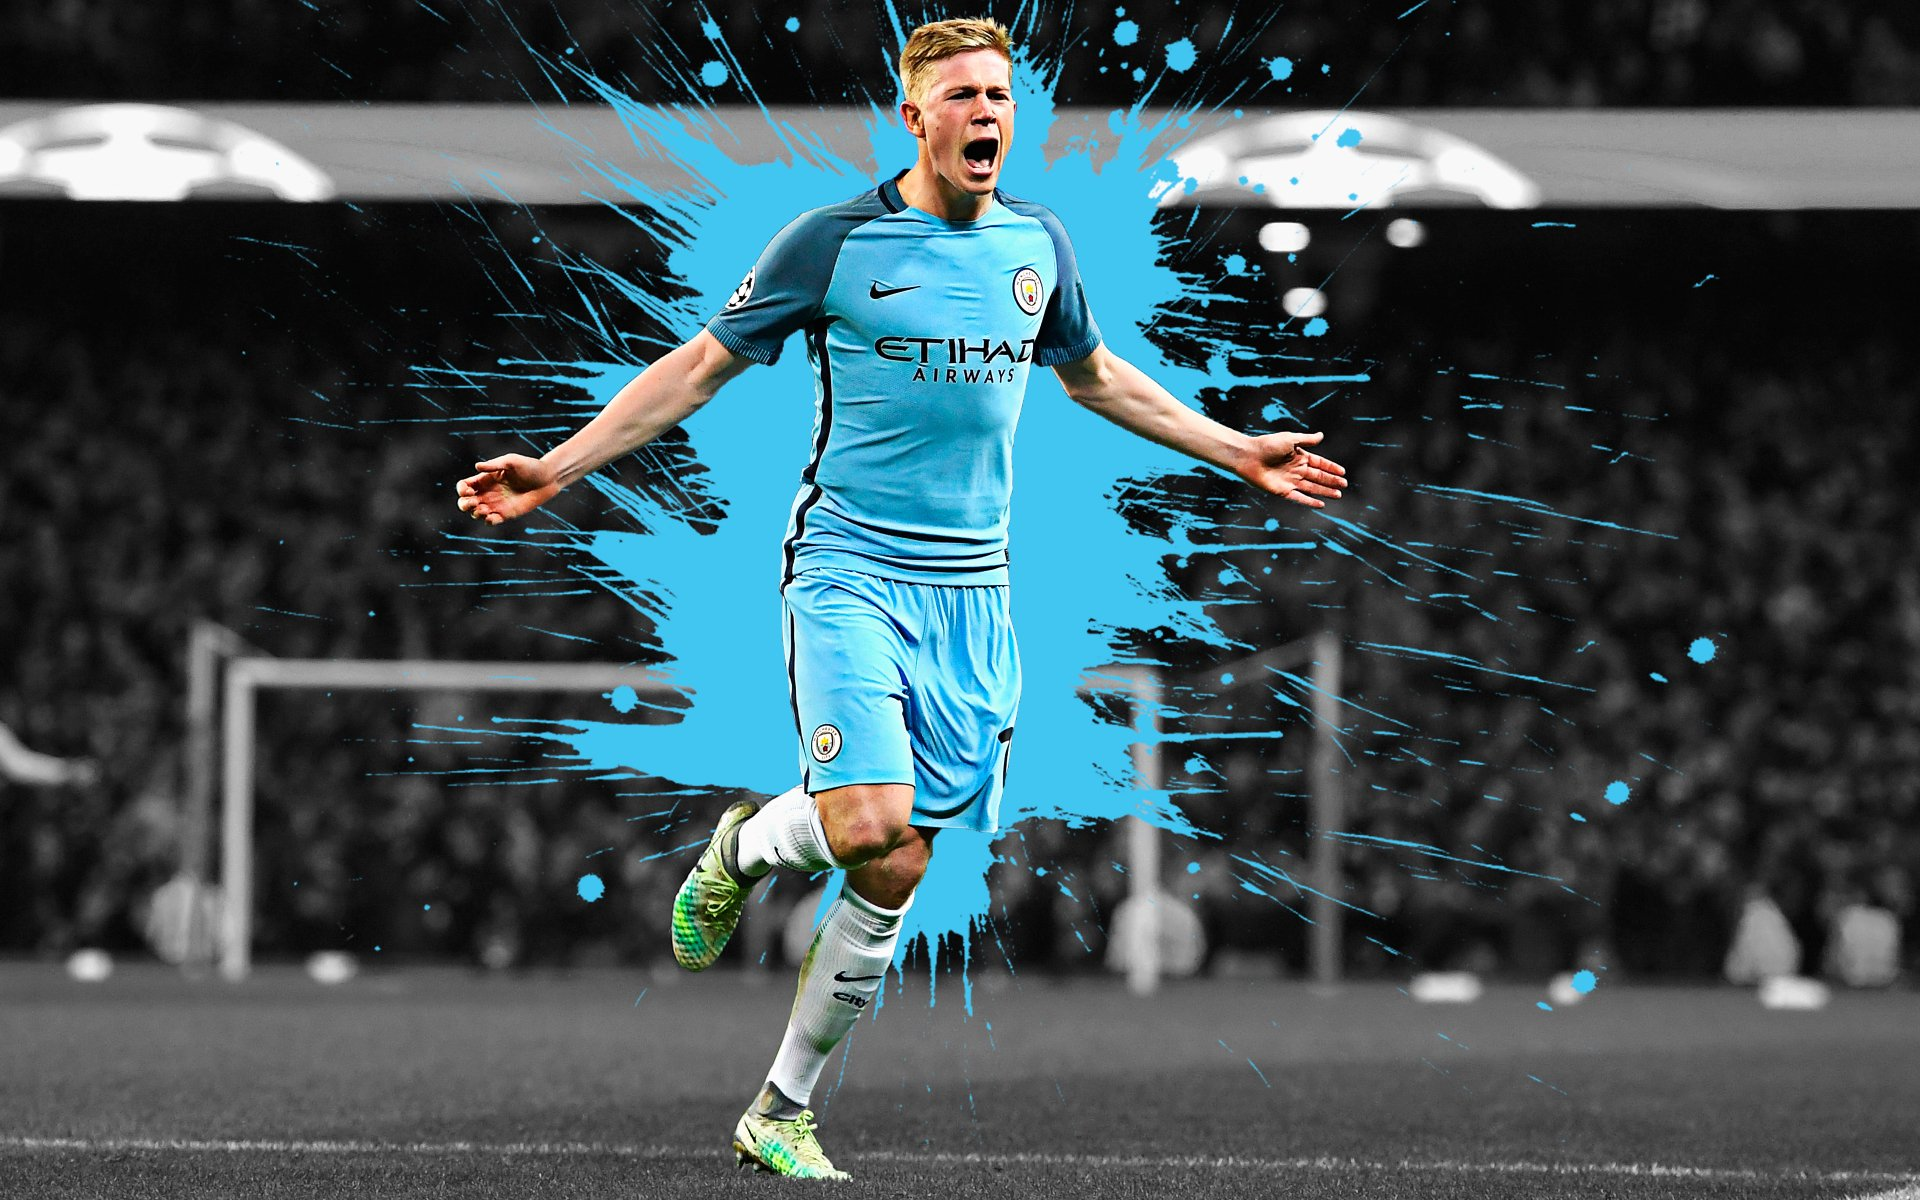 9 Kevin De Bruyne HD Wallpapers